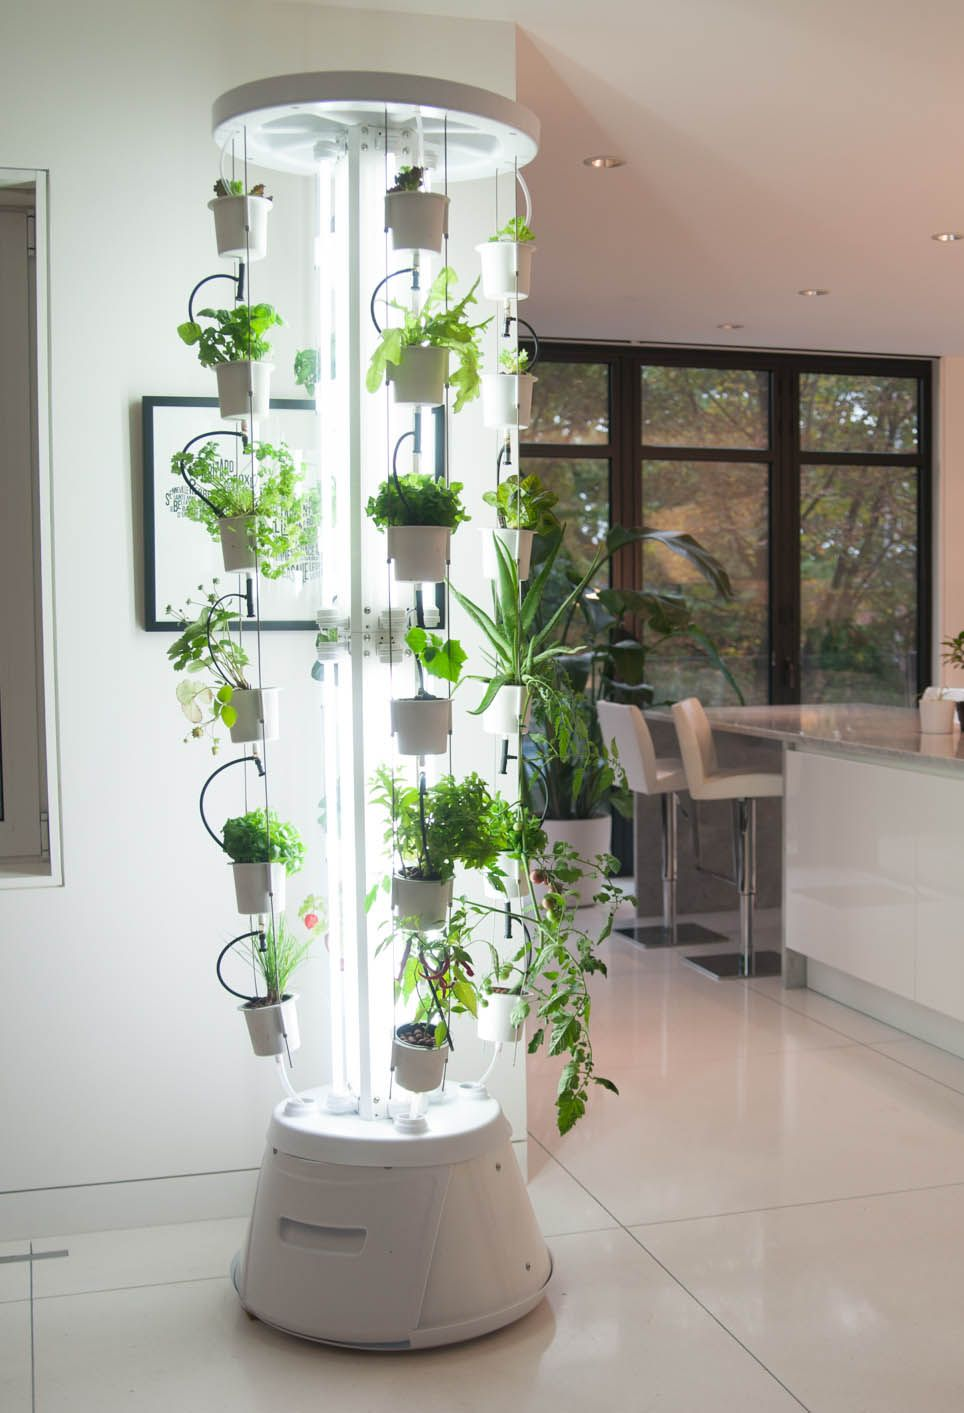 The NutriTower is a complete vertical hydroponic gardening ...